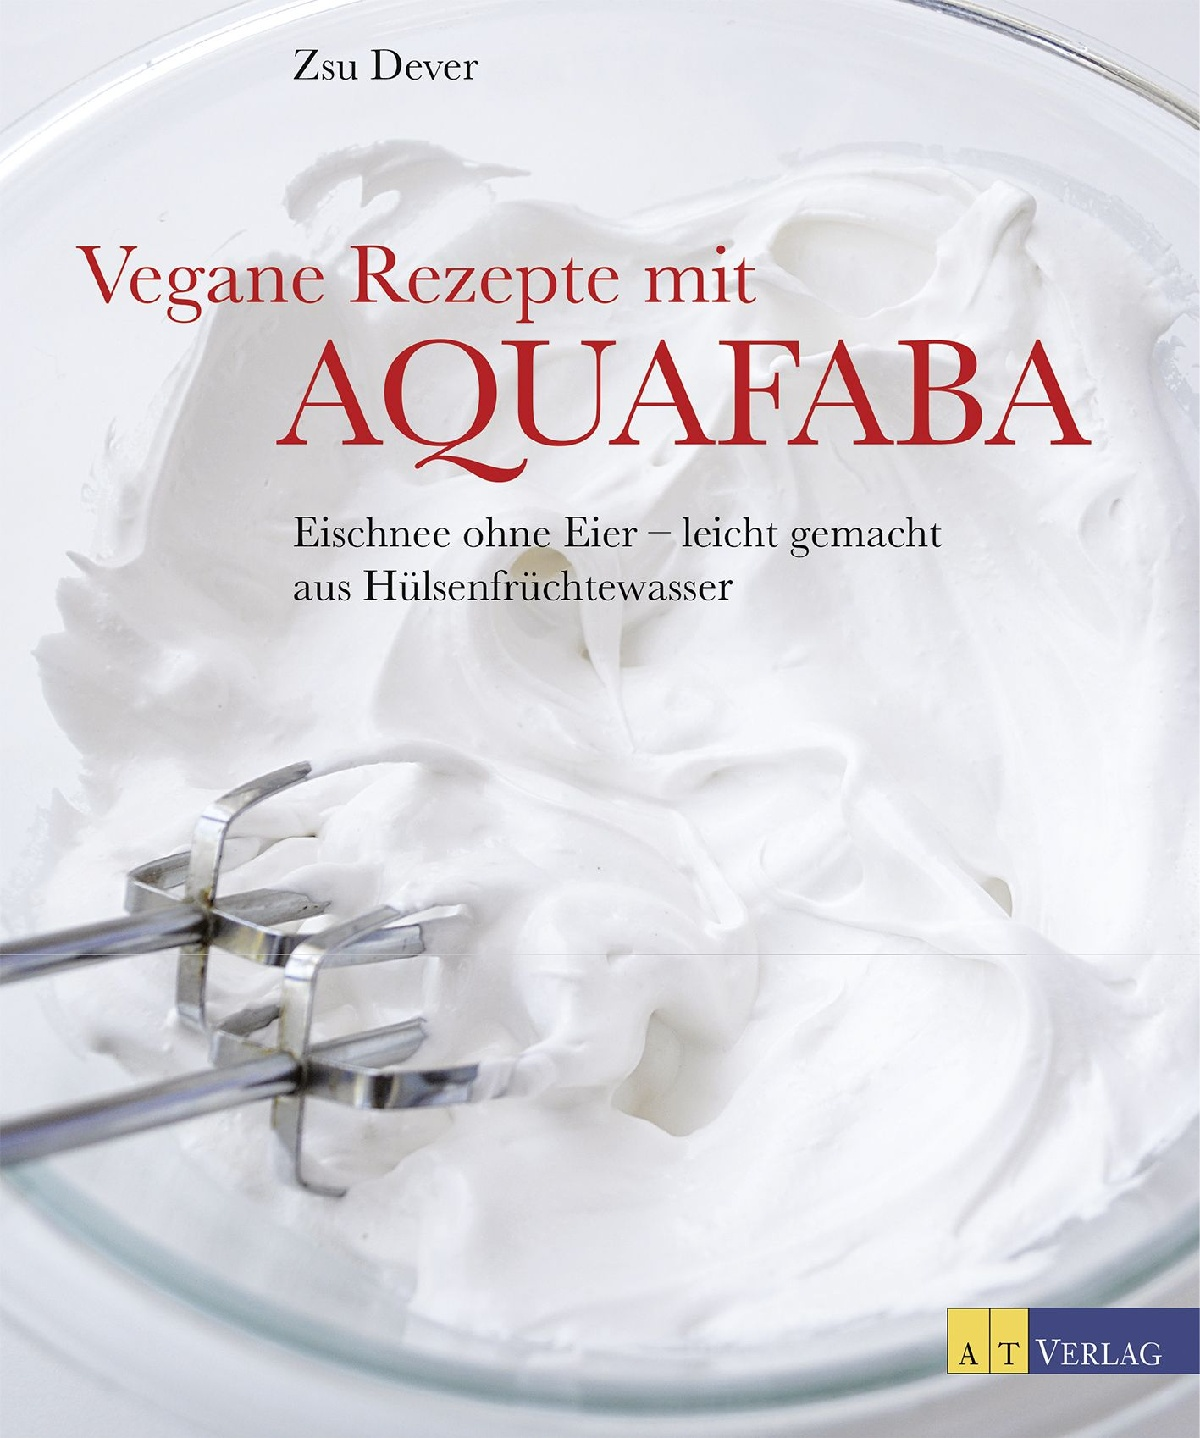 buch vegane rezepte mit aquafaba von zsu dever at verlag. Black Bedroom Furniture Sets. Home Design Ideas